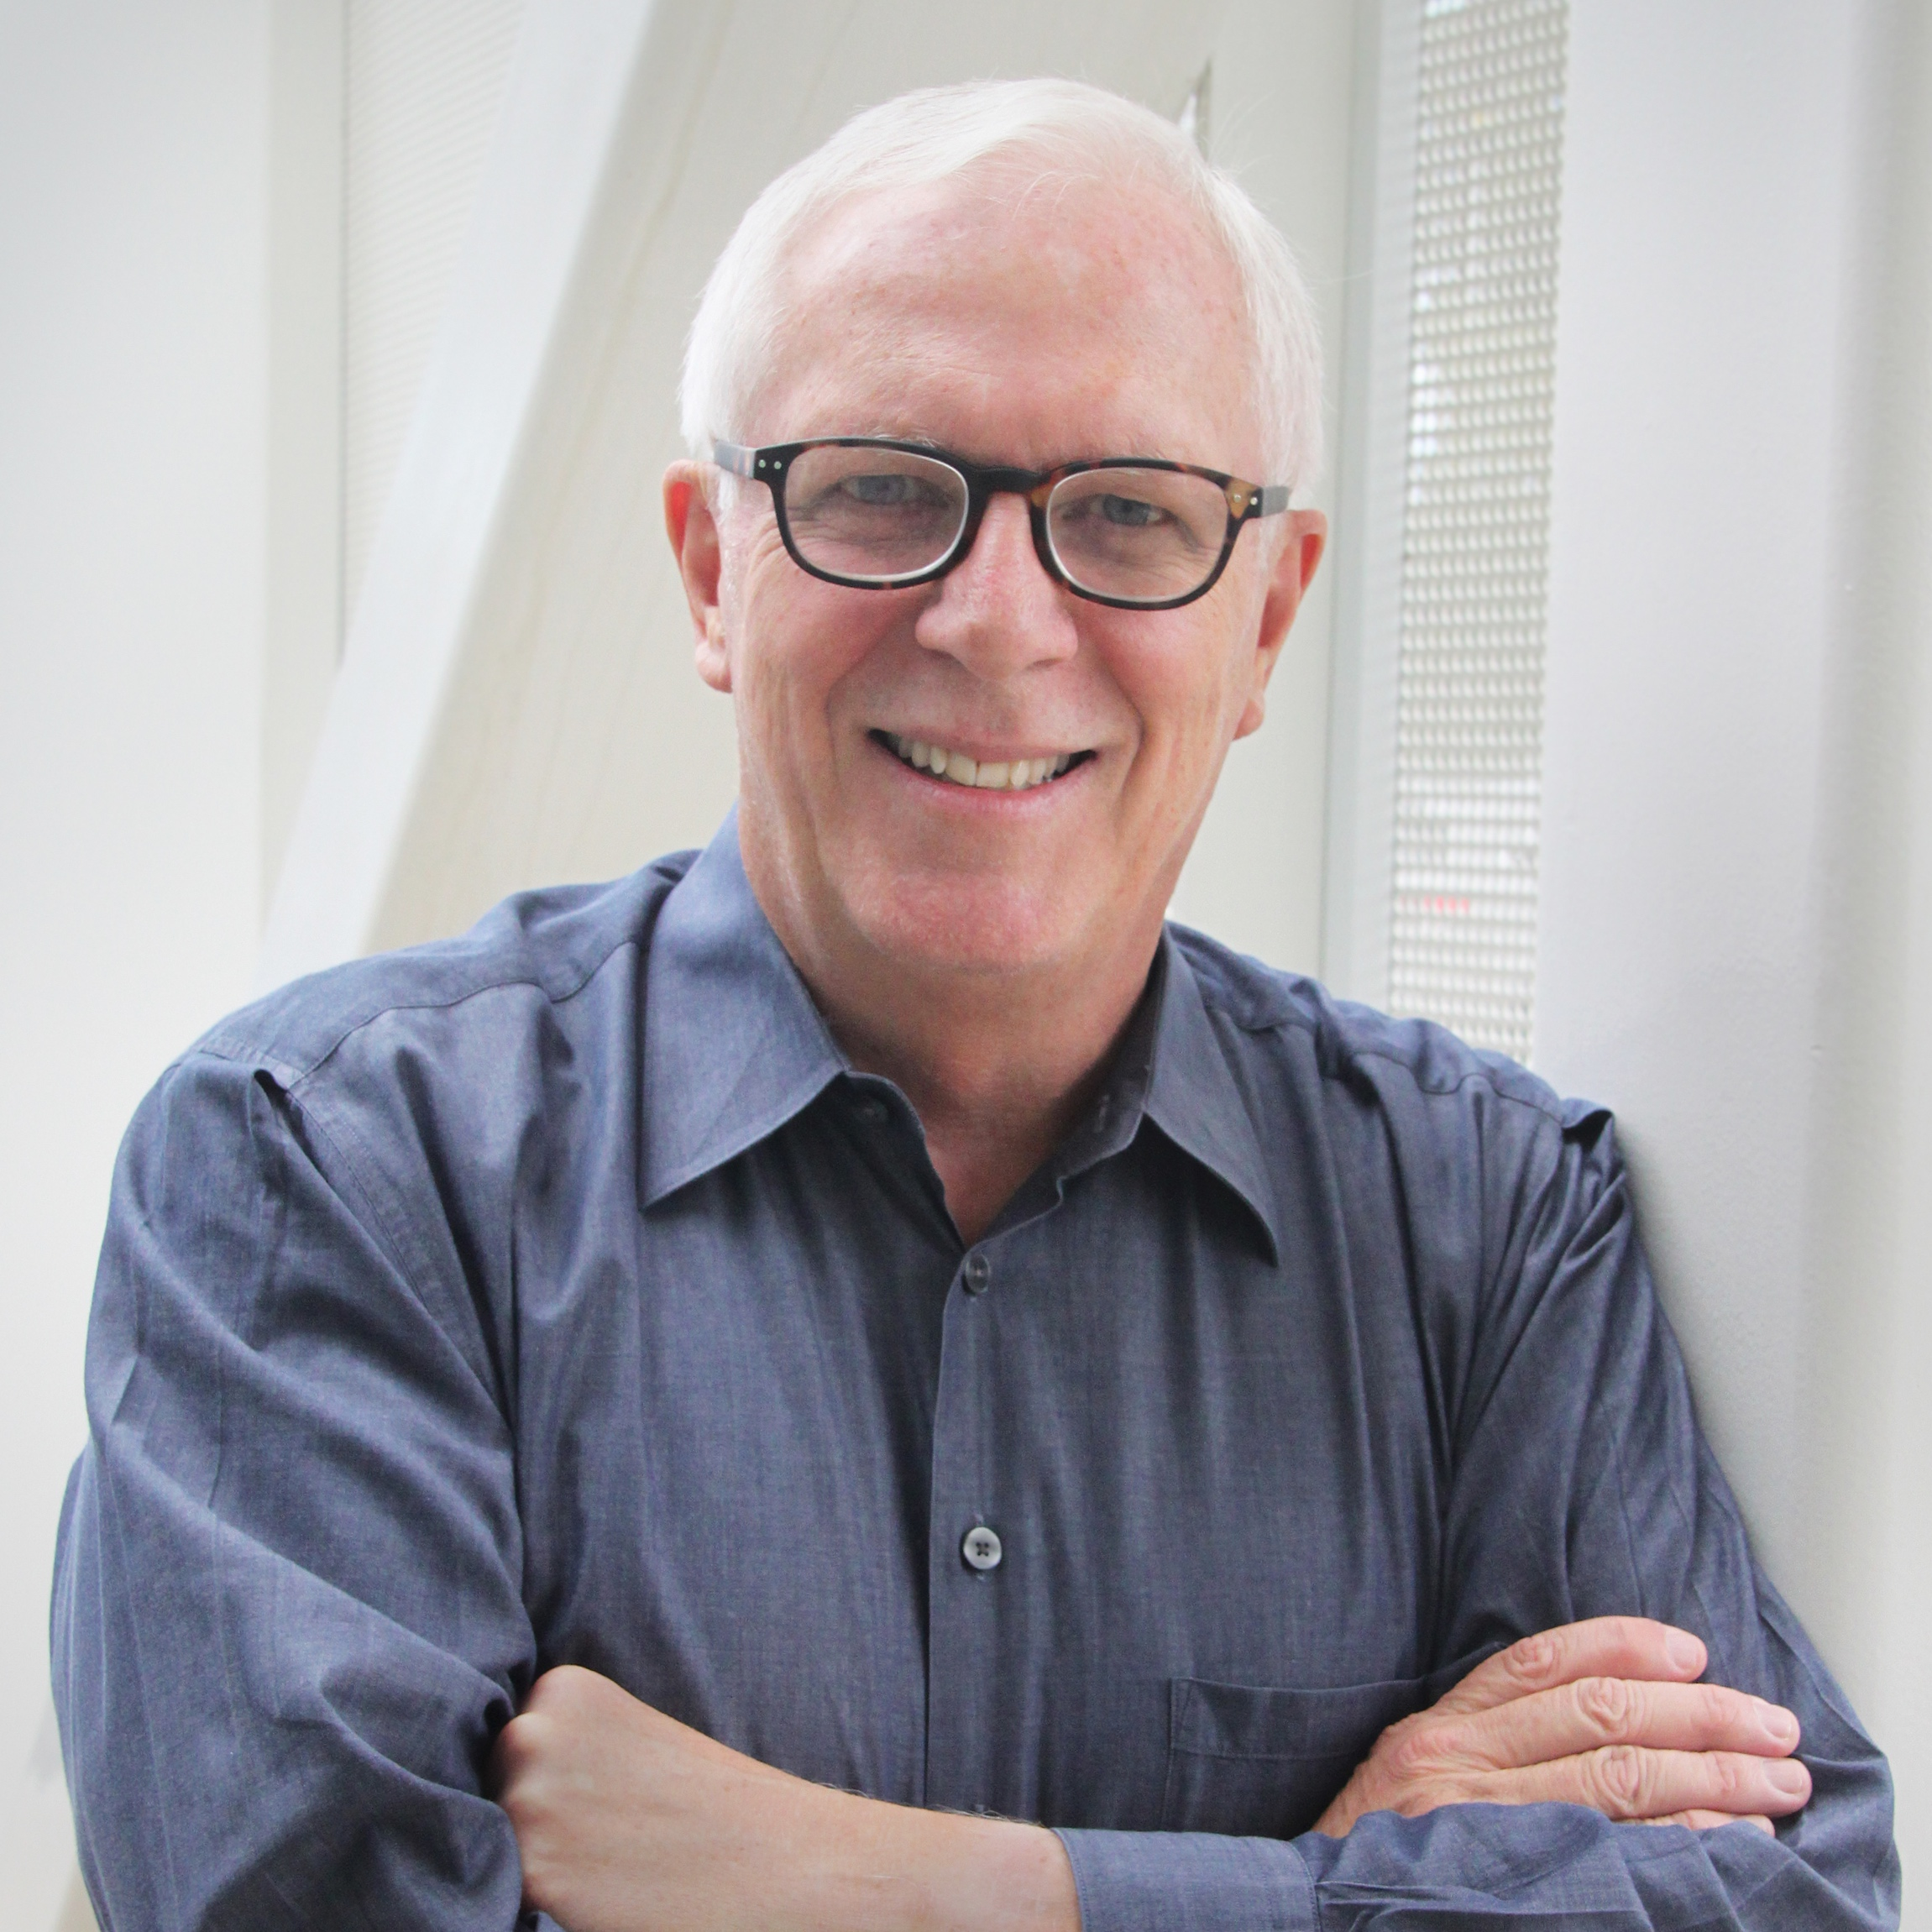 Paul F. Pfanner - Co-Founder, President & CEO